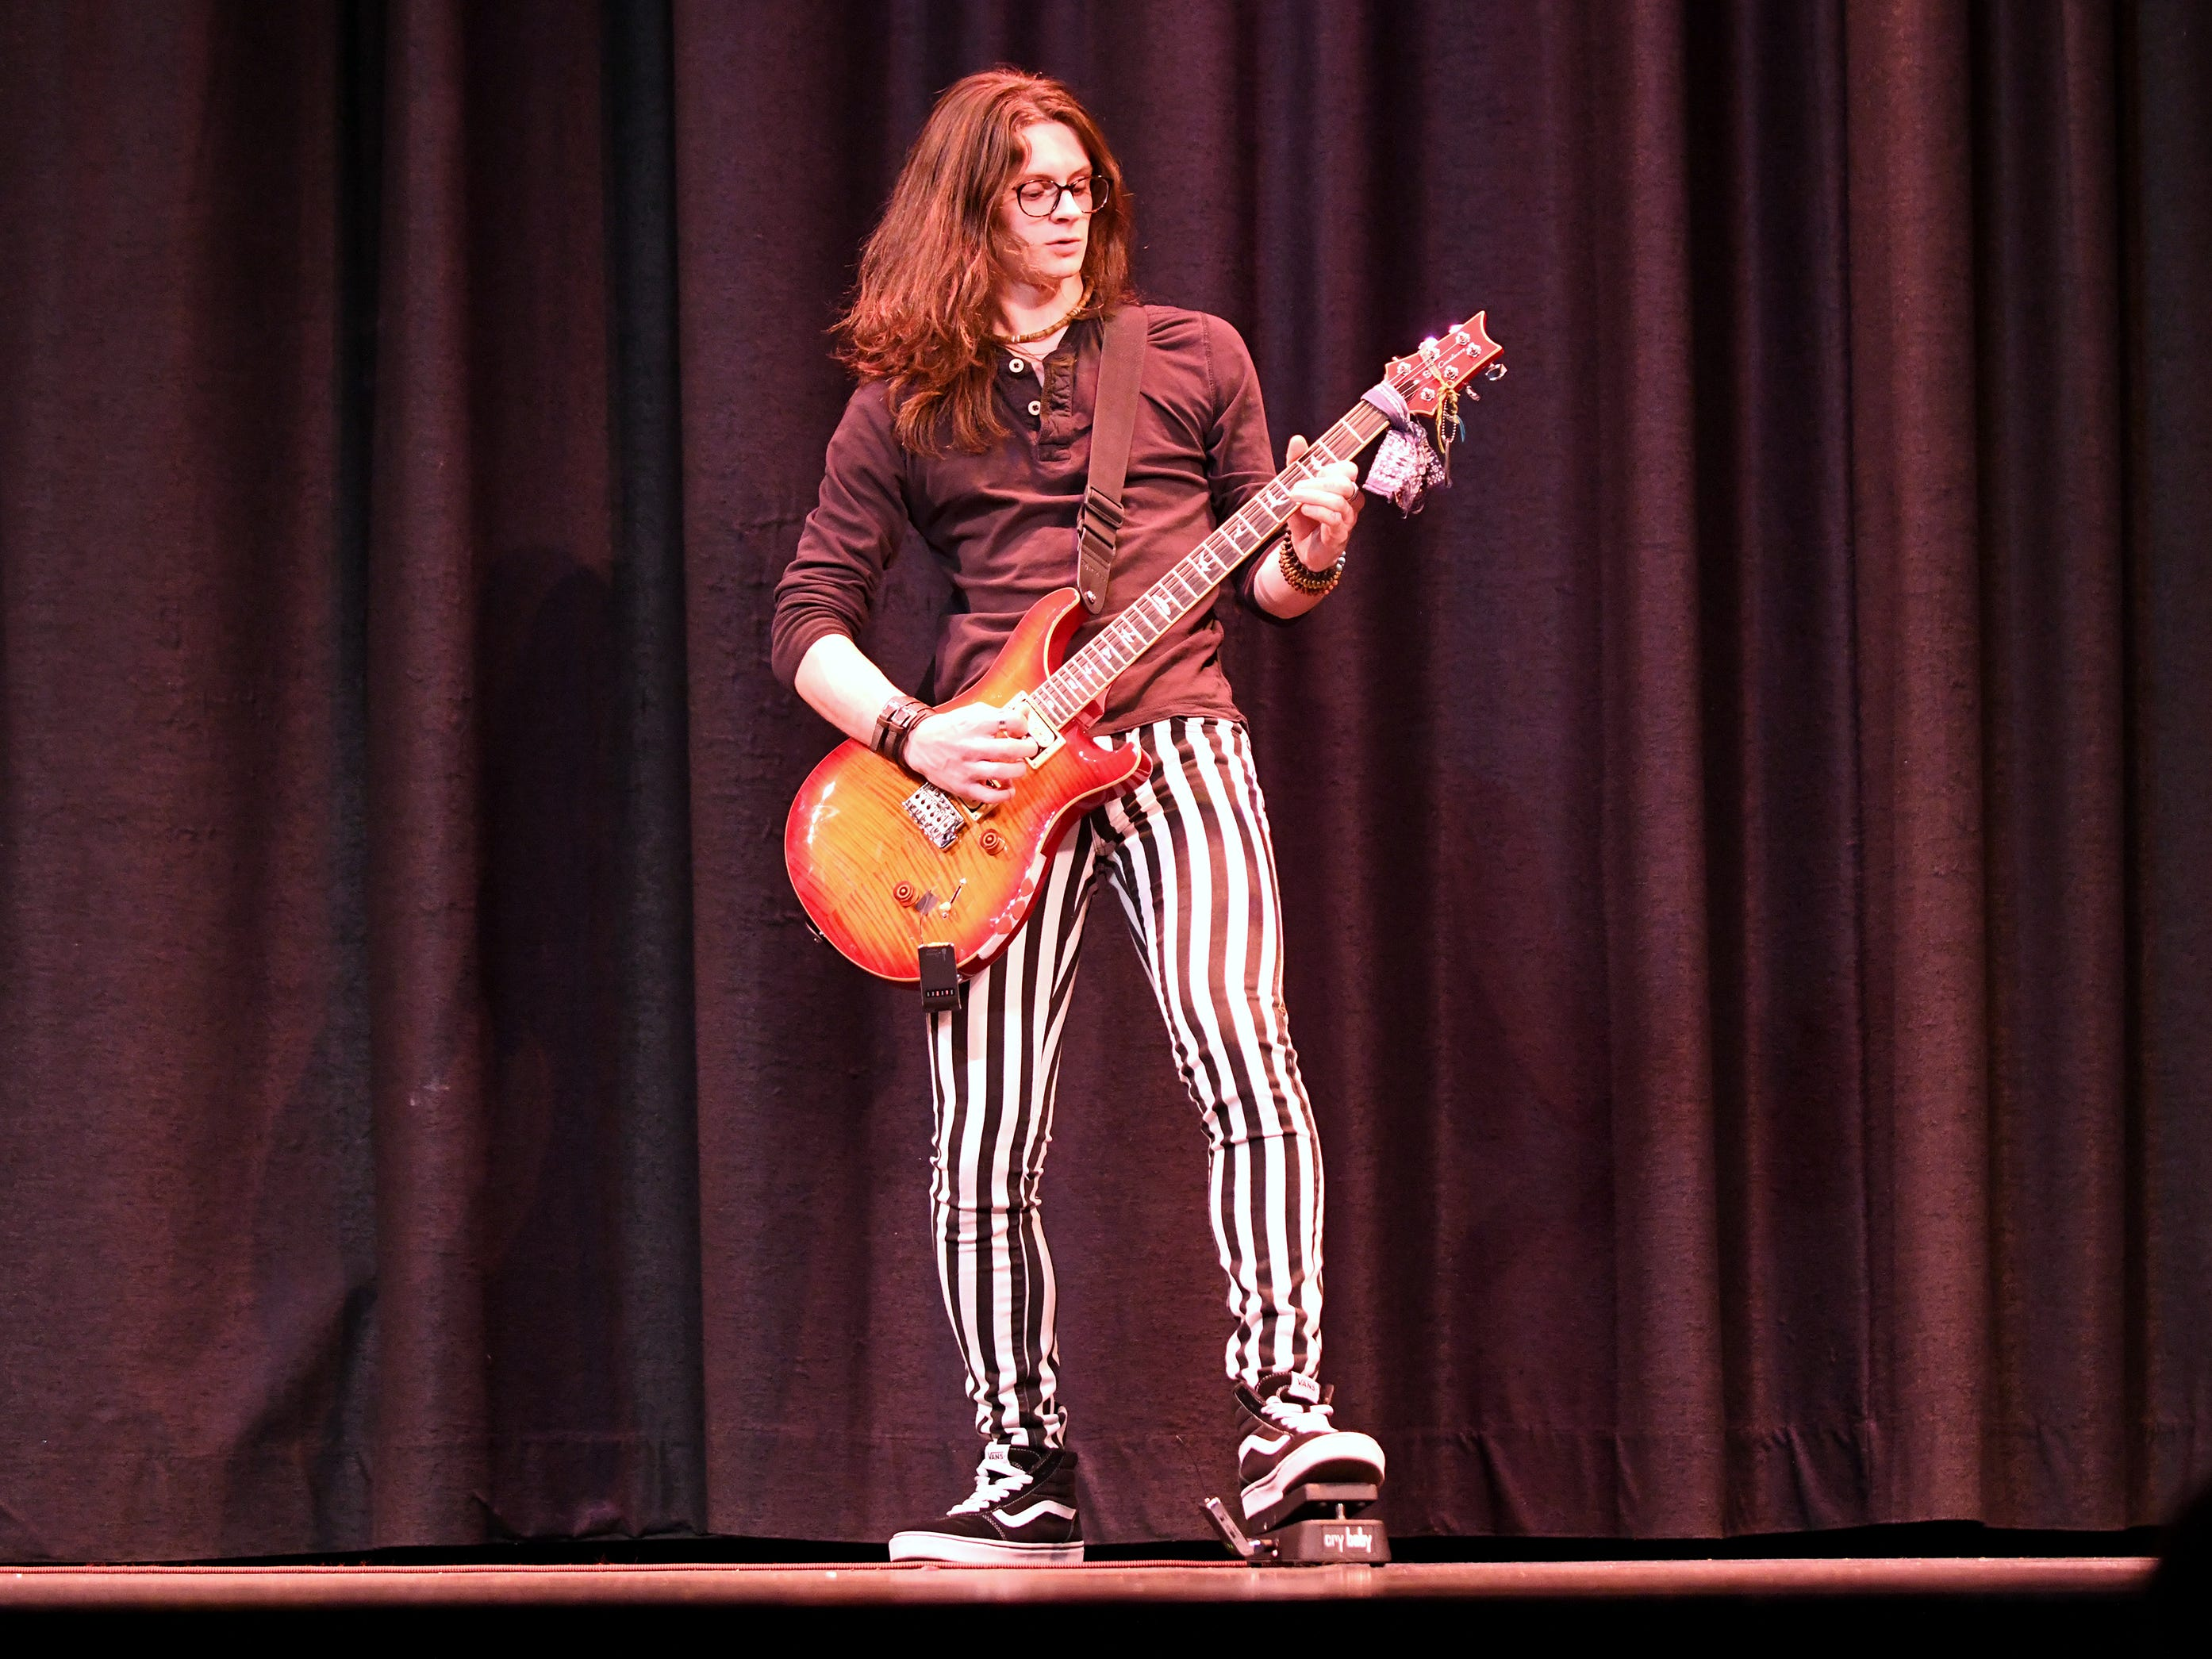 Trey Luciano performs during the talent portion of Mr. Vineland 2019 at Vineland High School on Thursday, January 10.